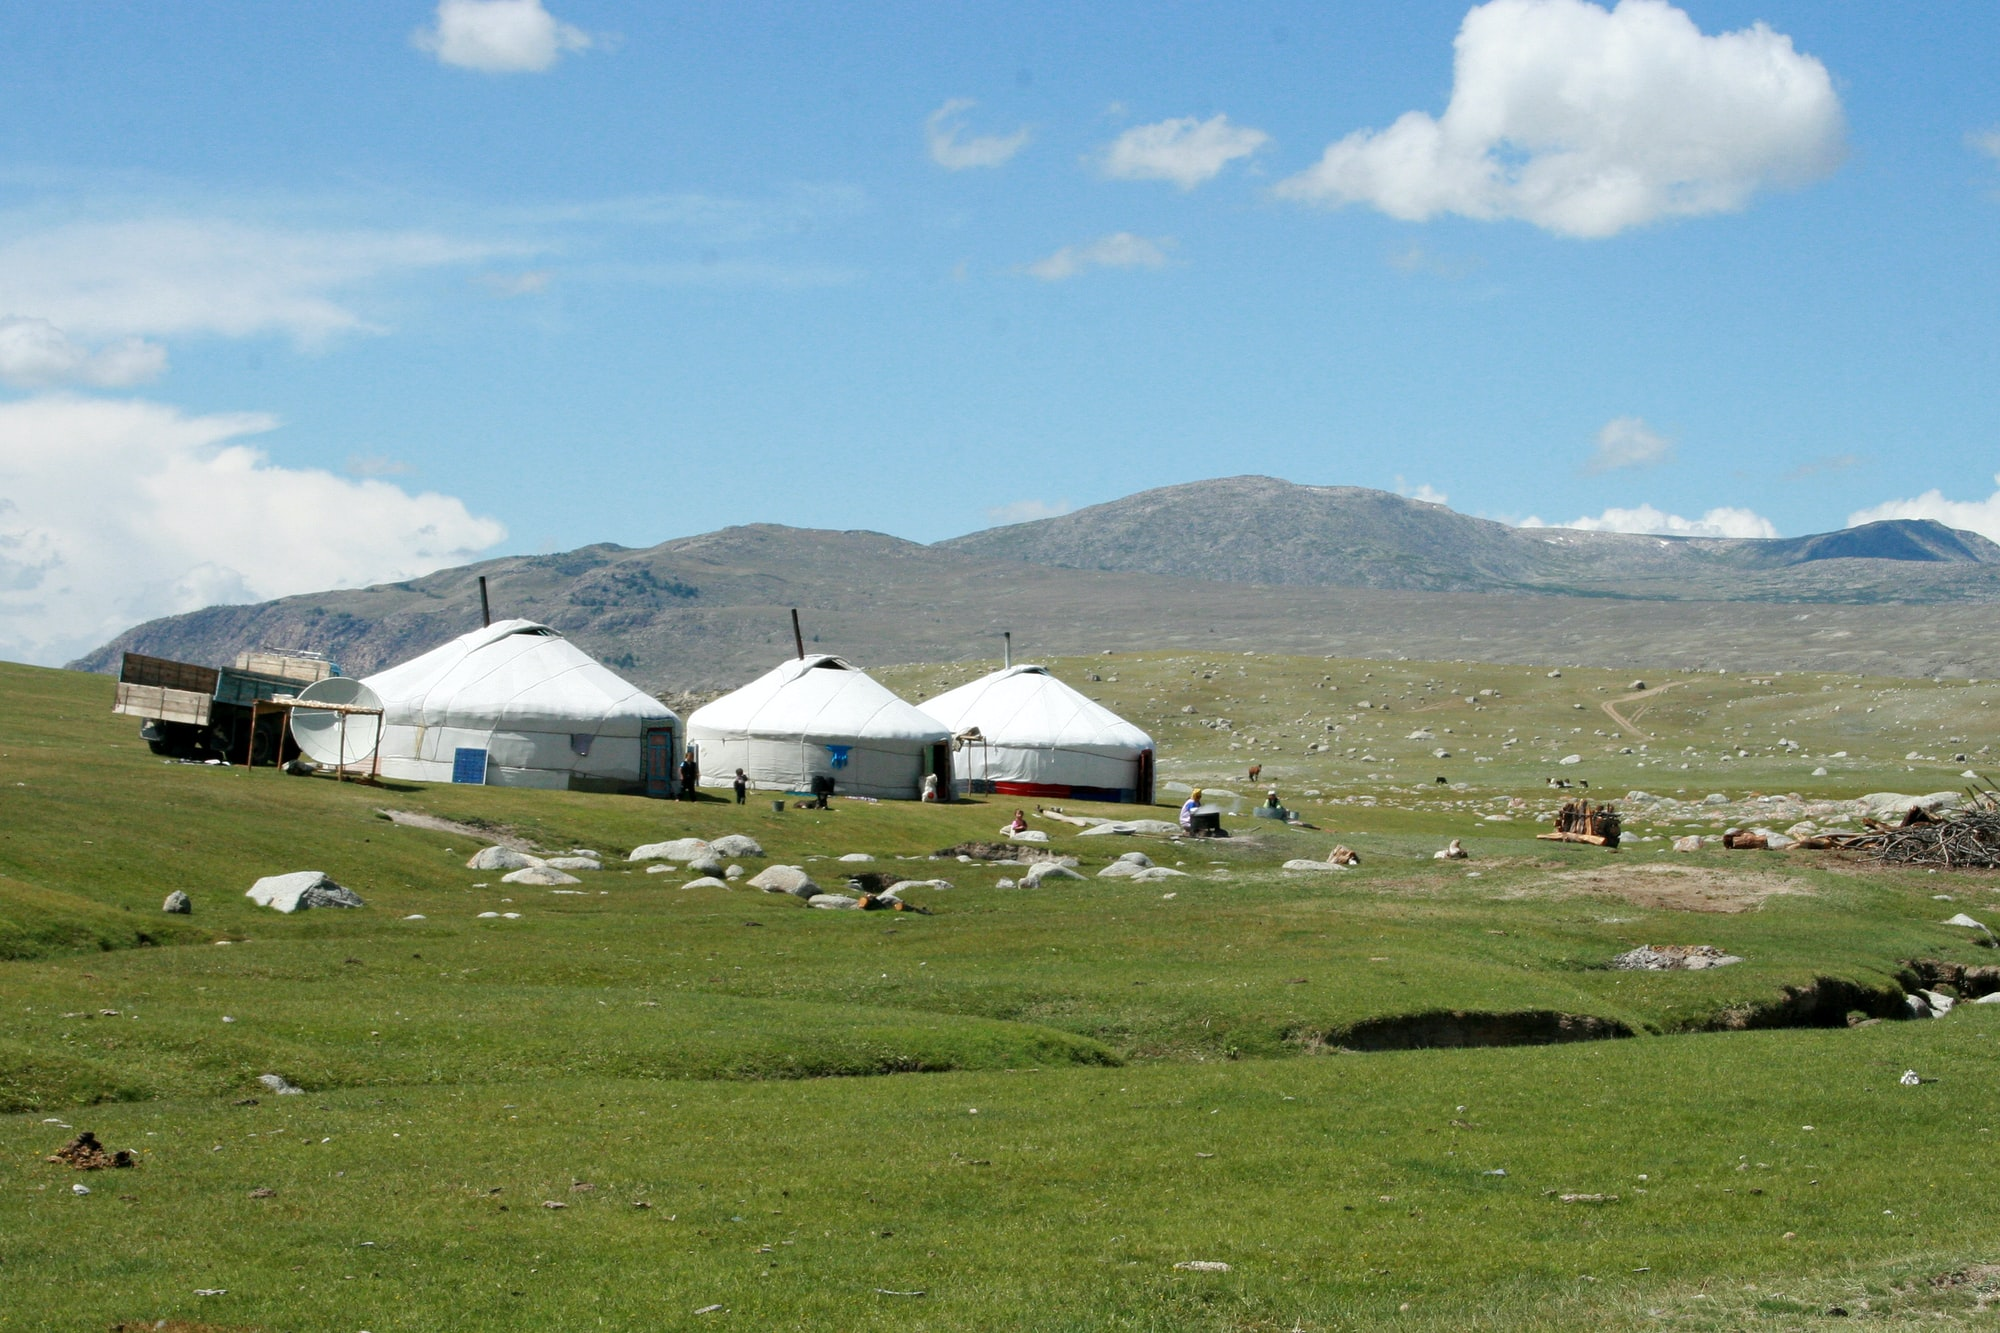 Yurt village Mongolia